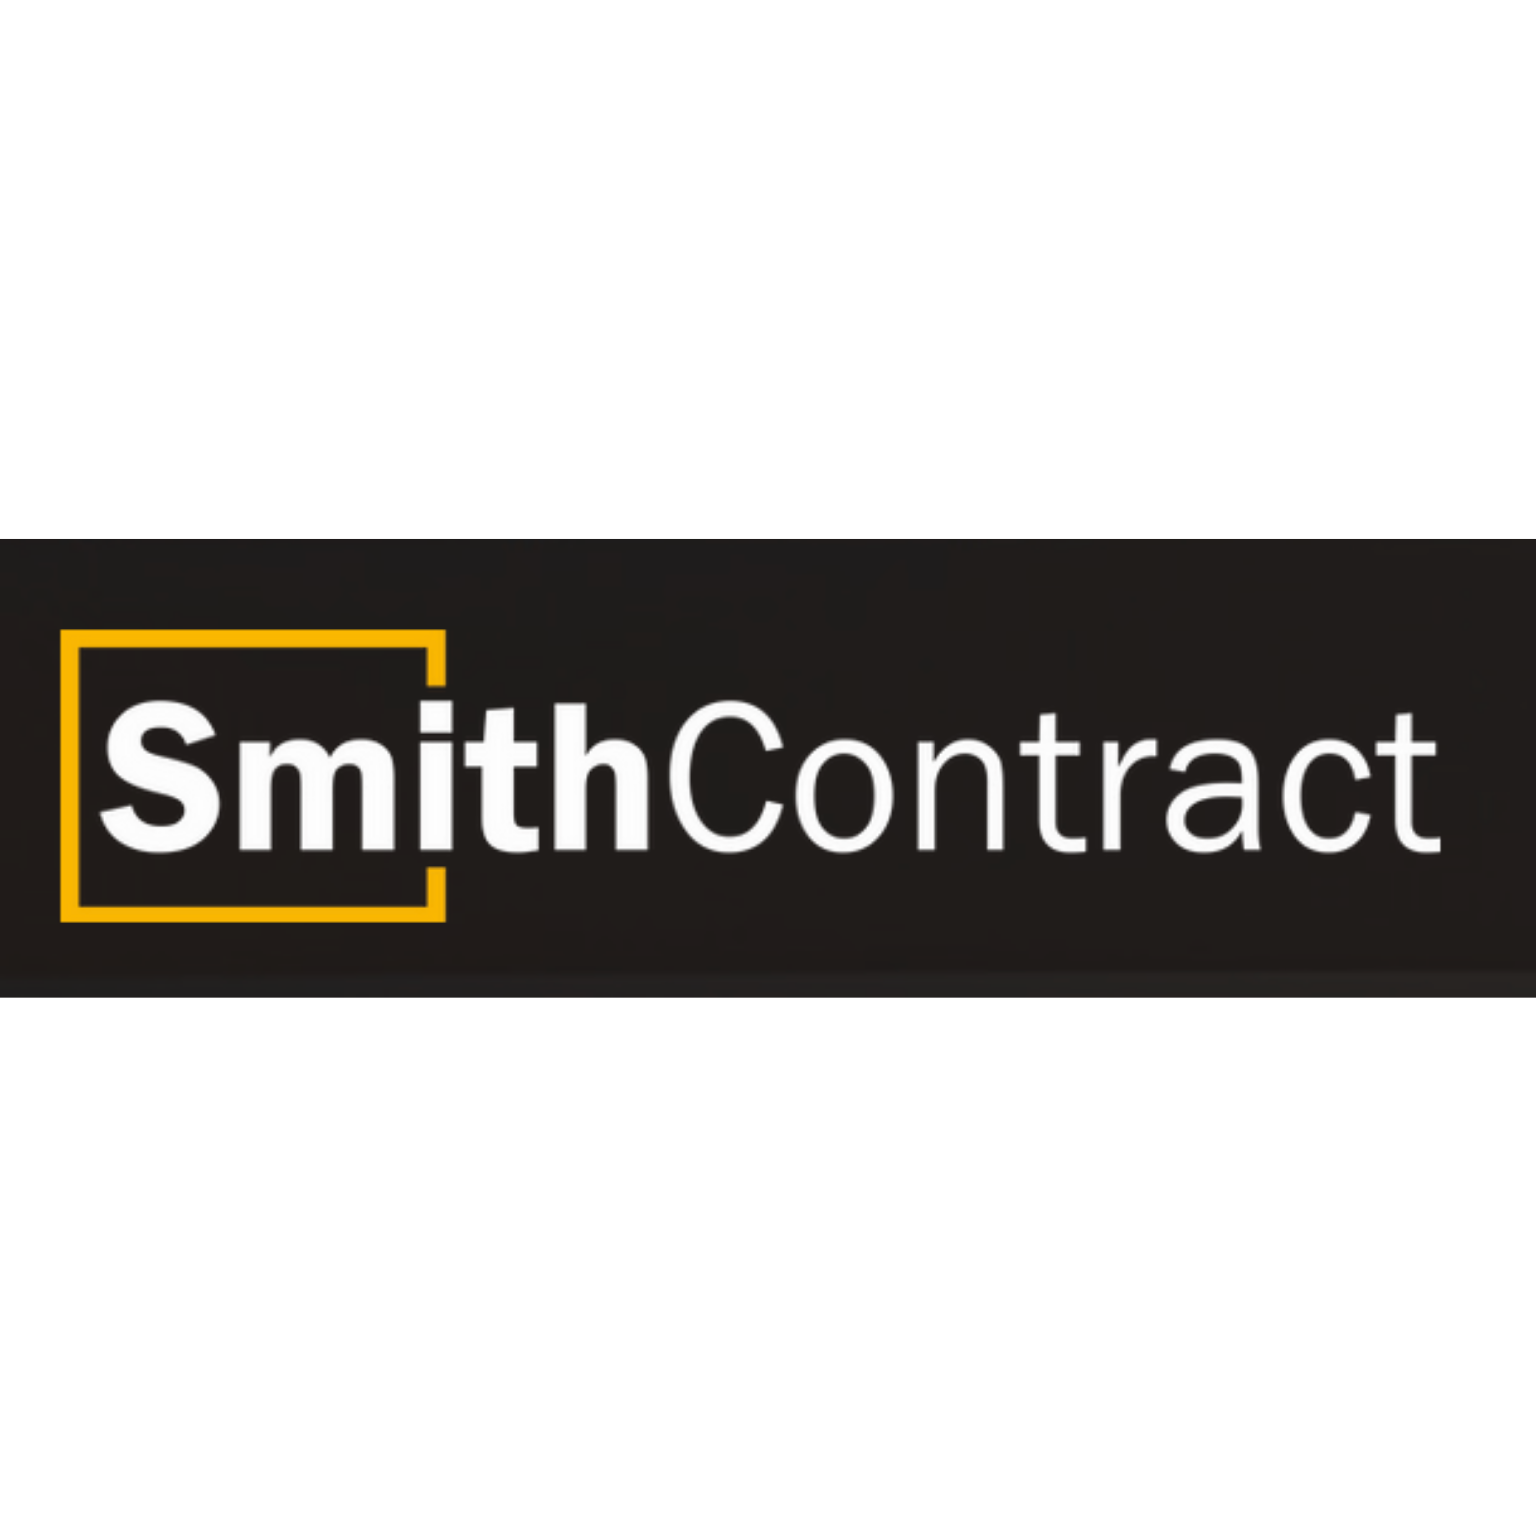 Smith Contract, LLC